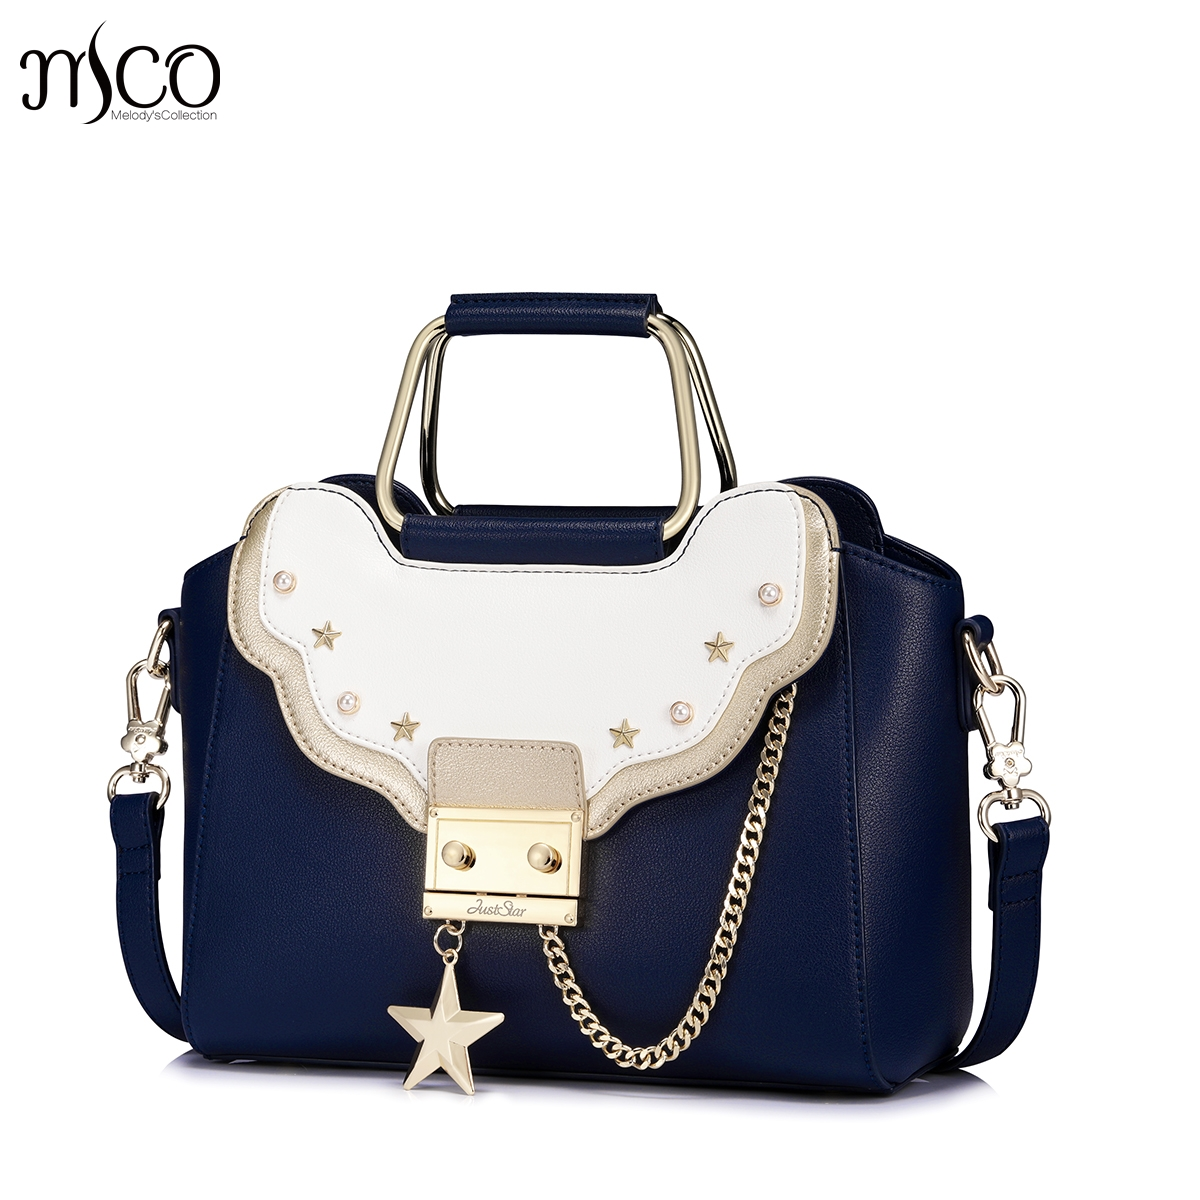 New Top Quality Brand Star Chains Leather Purse Crossbody Shoulder Women Bag Clutch Female Handbags Sac a Main Femme De Marque aou new women classic bag brand chains bags women s fashion shoulder bag red celebrity crossbody bag sac a main china gift